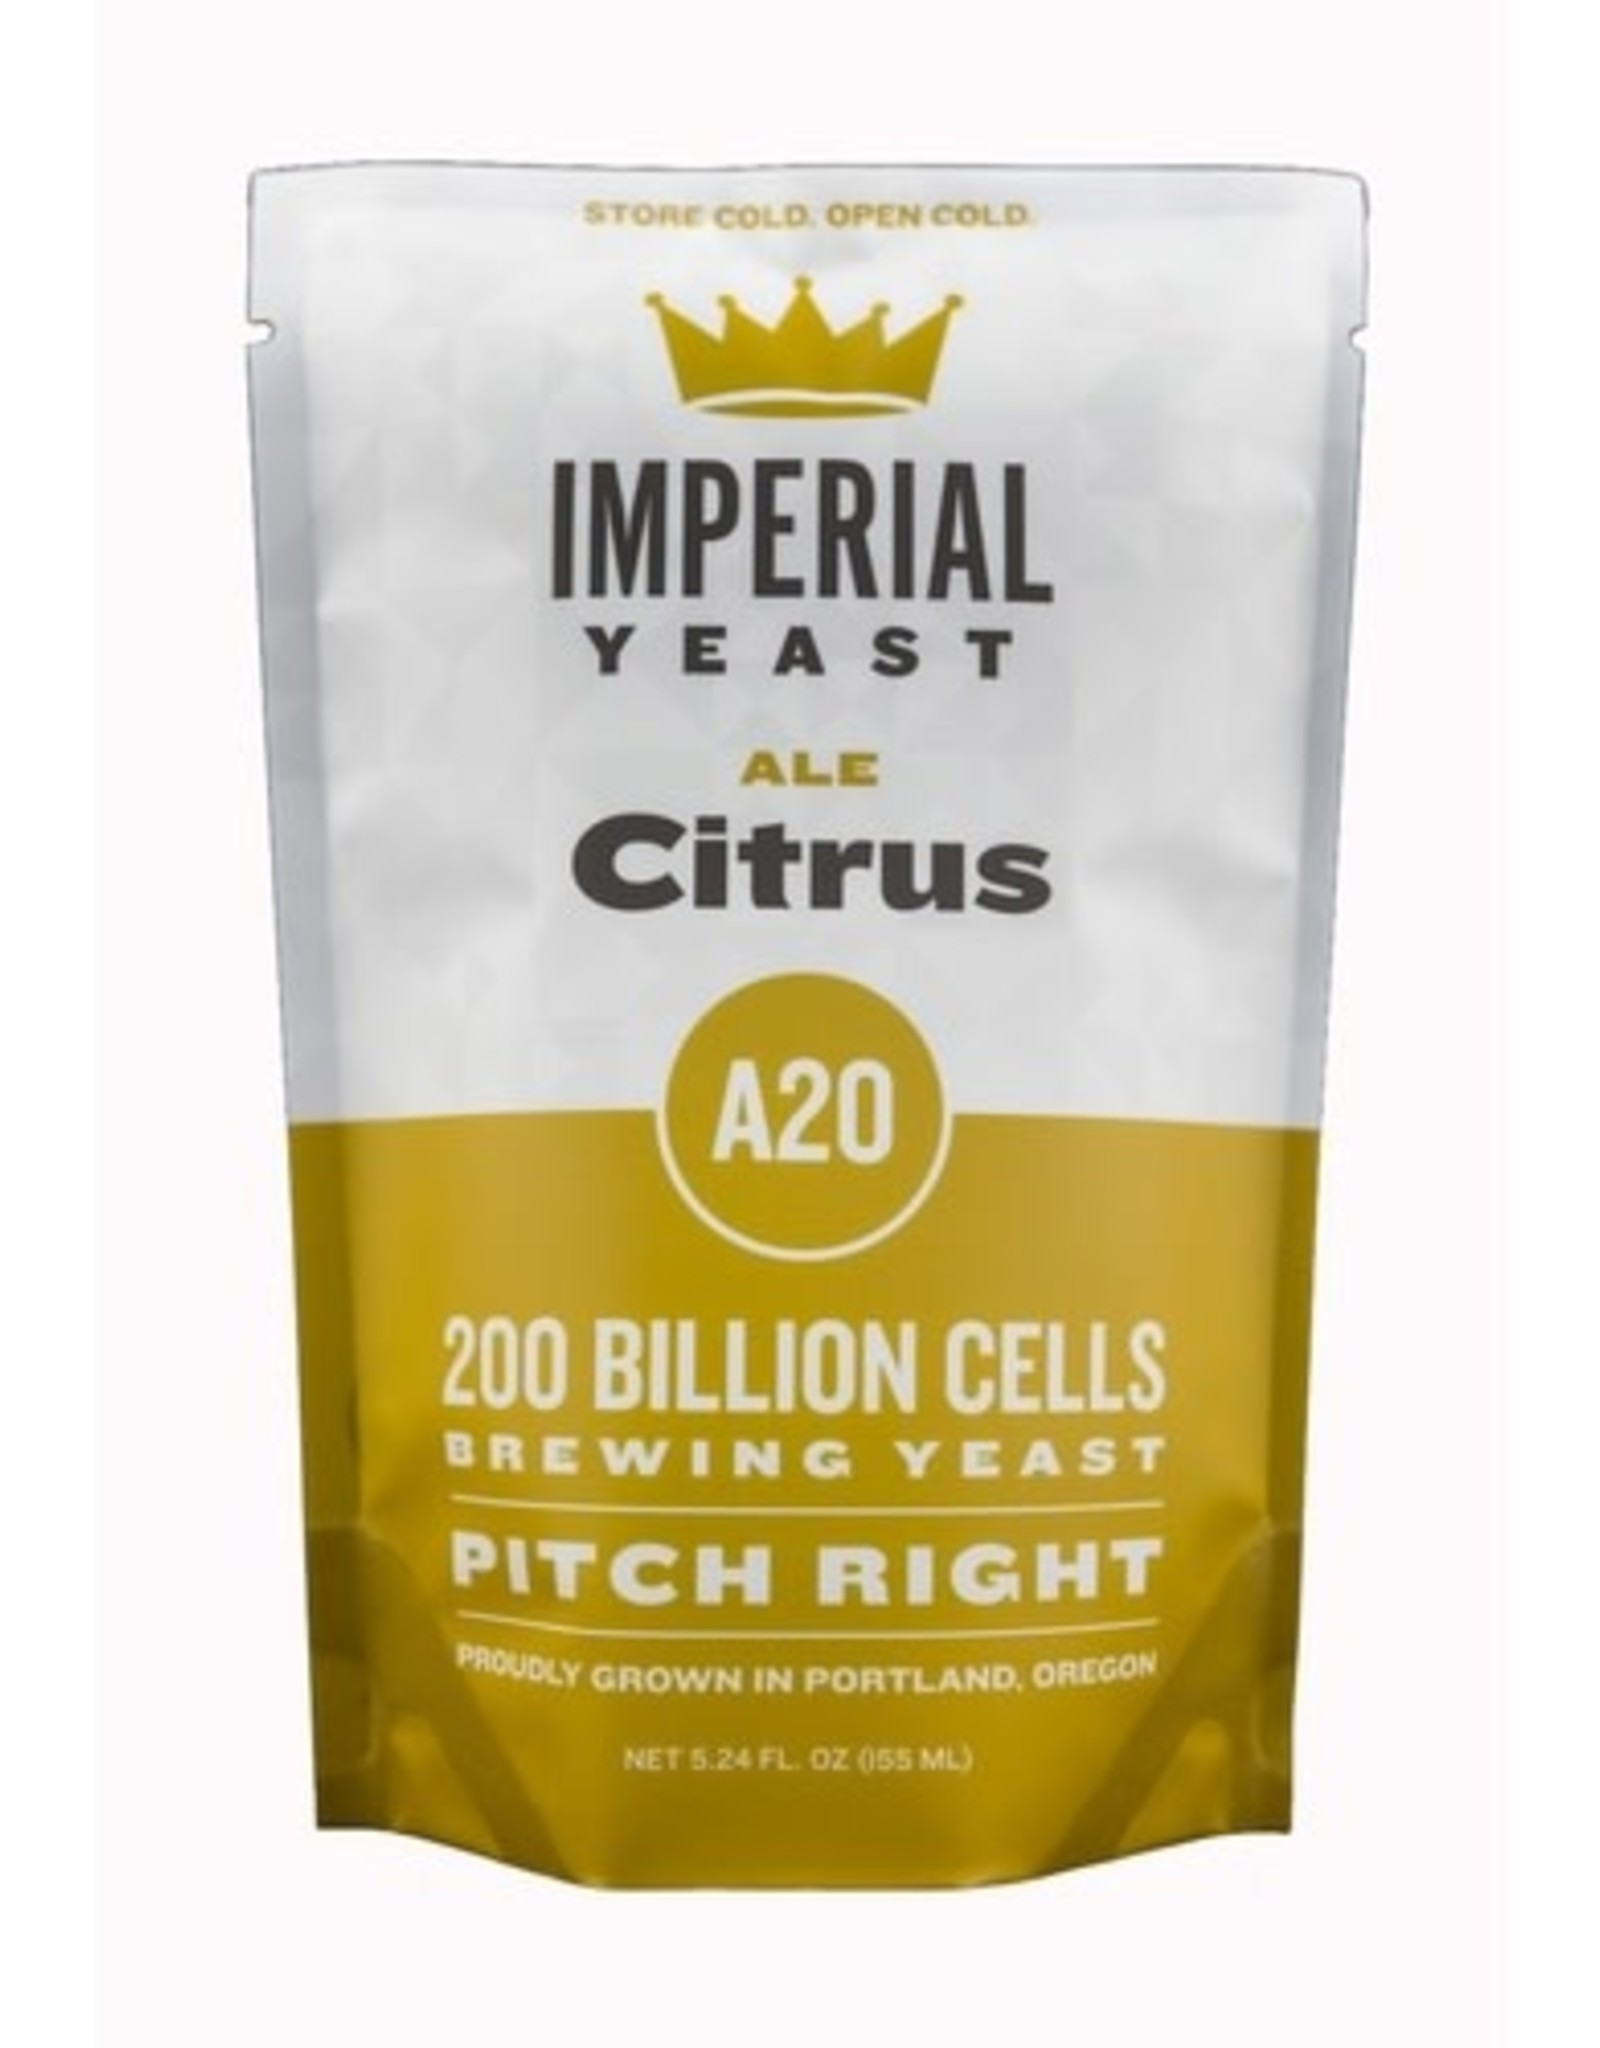 Imperial Yeast A20 Citrus- Imperial Yeast